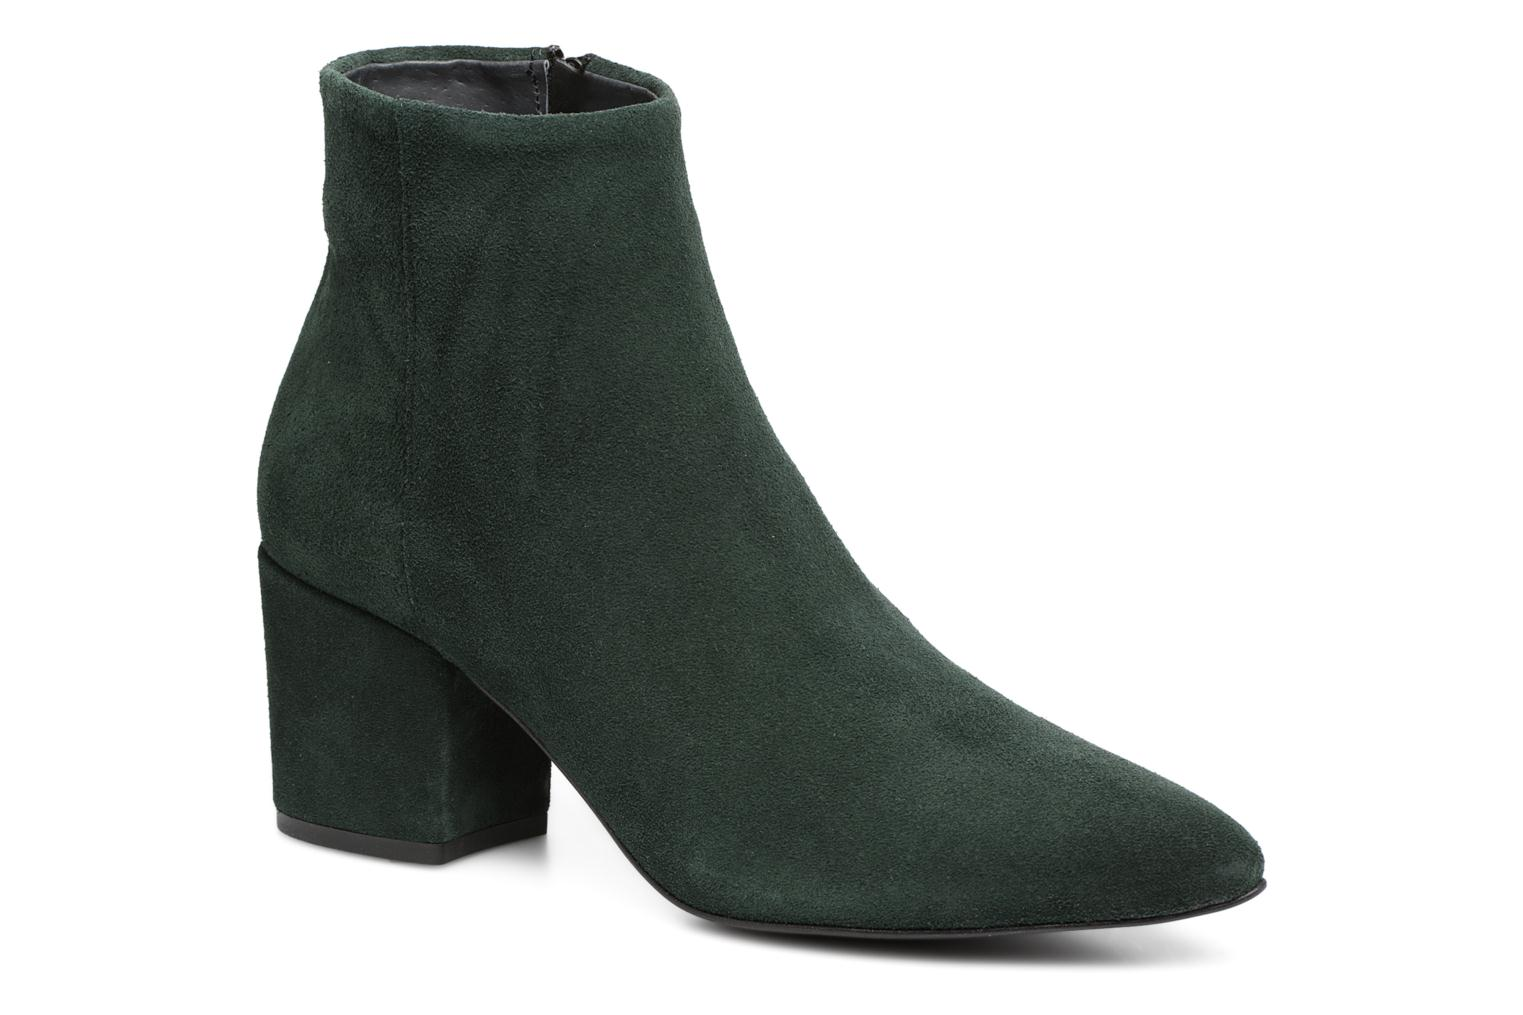 Vero Moda ASTRID LEATHER BOOT Verde